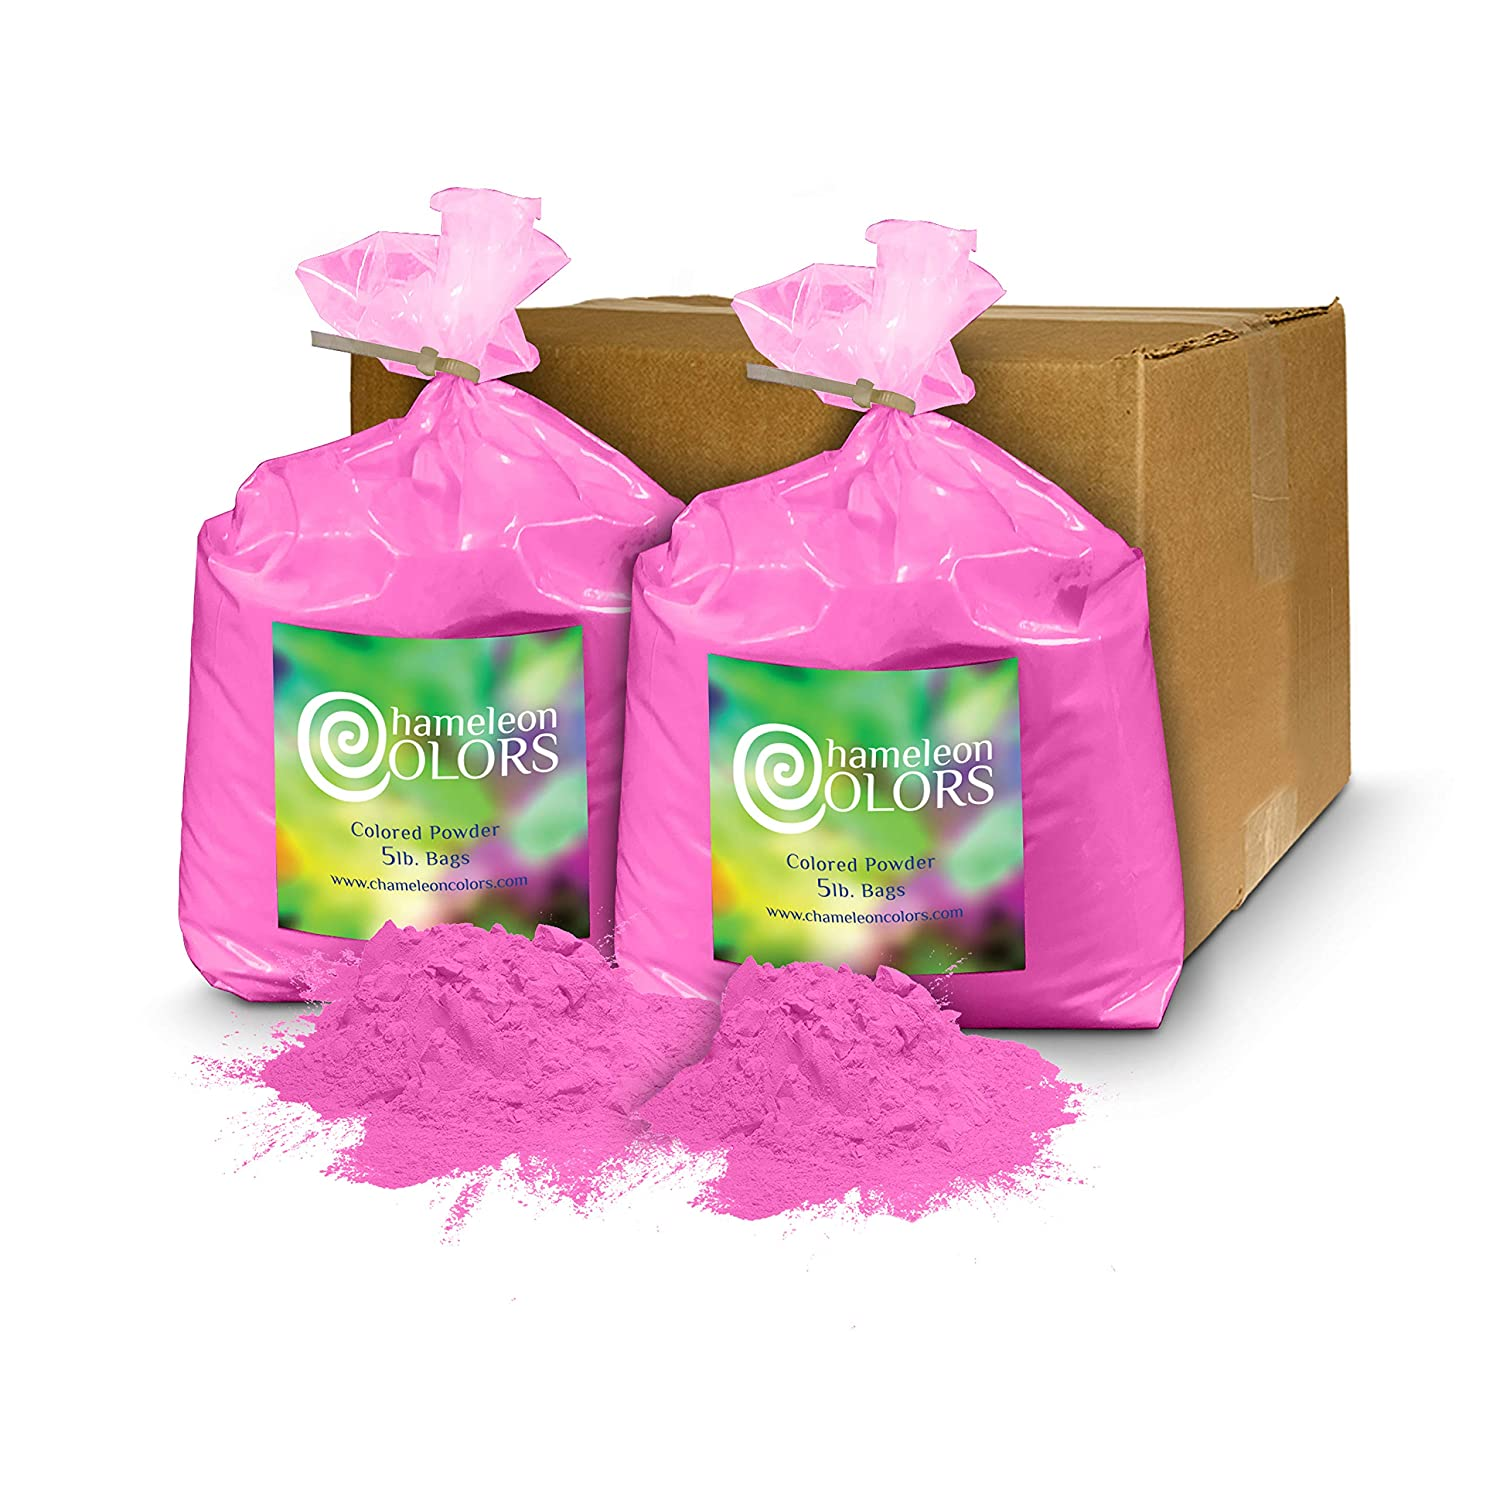 Color Powder Gender Reveal >> Holi Color Powder Gender Reveal By Chameleon Colors 10 Lbs Pink Same Premium Authentic Product Used For A Color Run 5k Etc